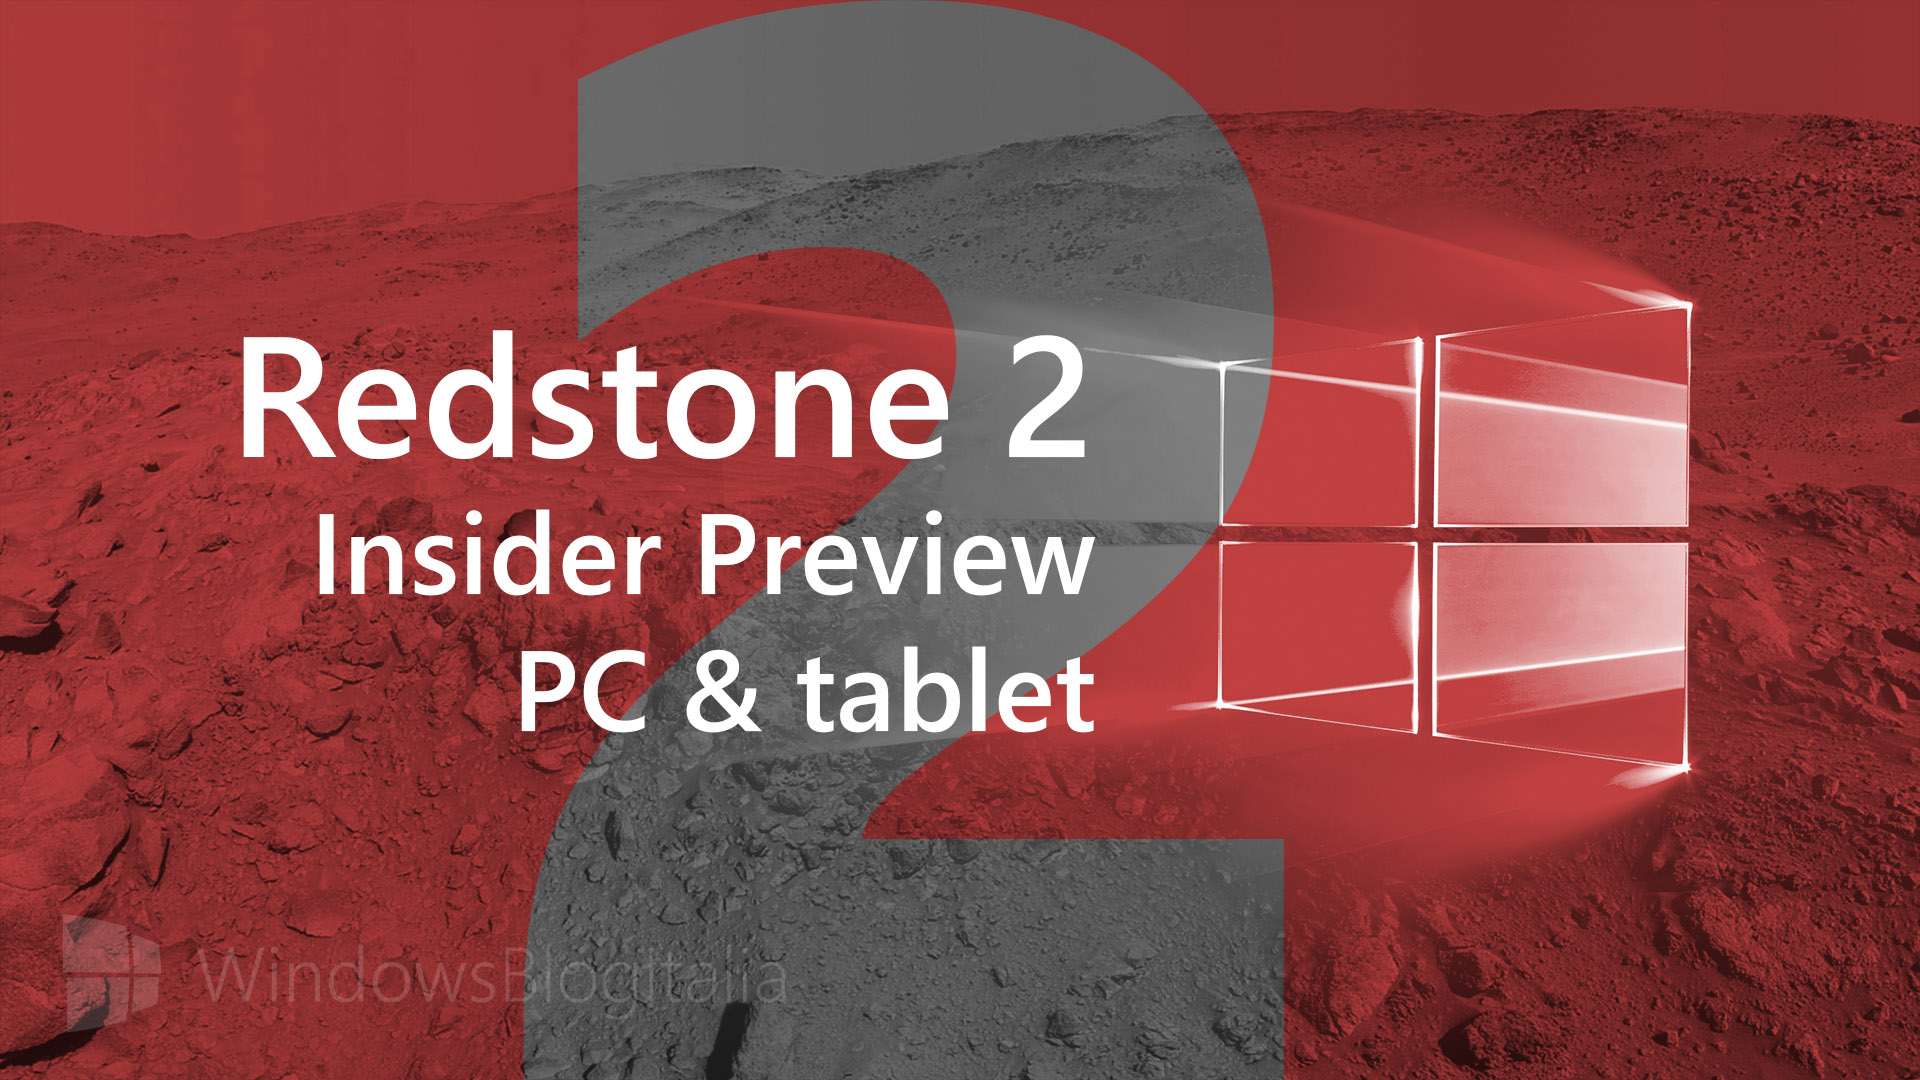 Redstone 2 PC tablet